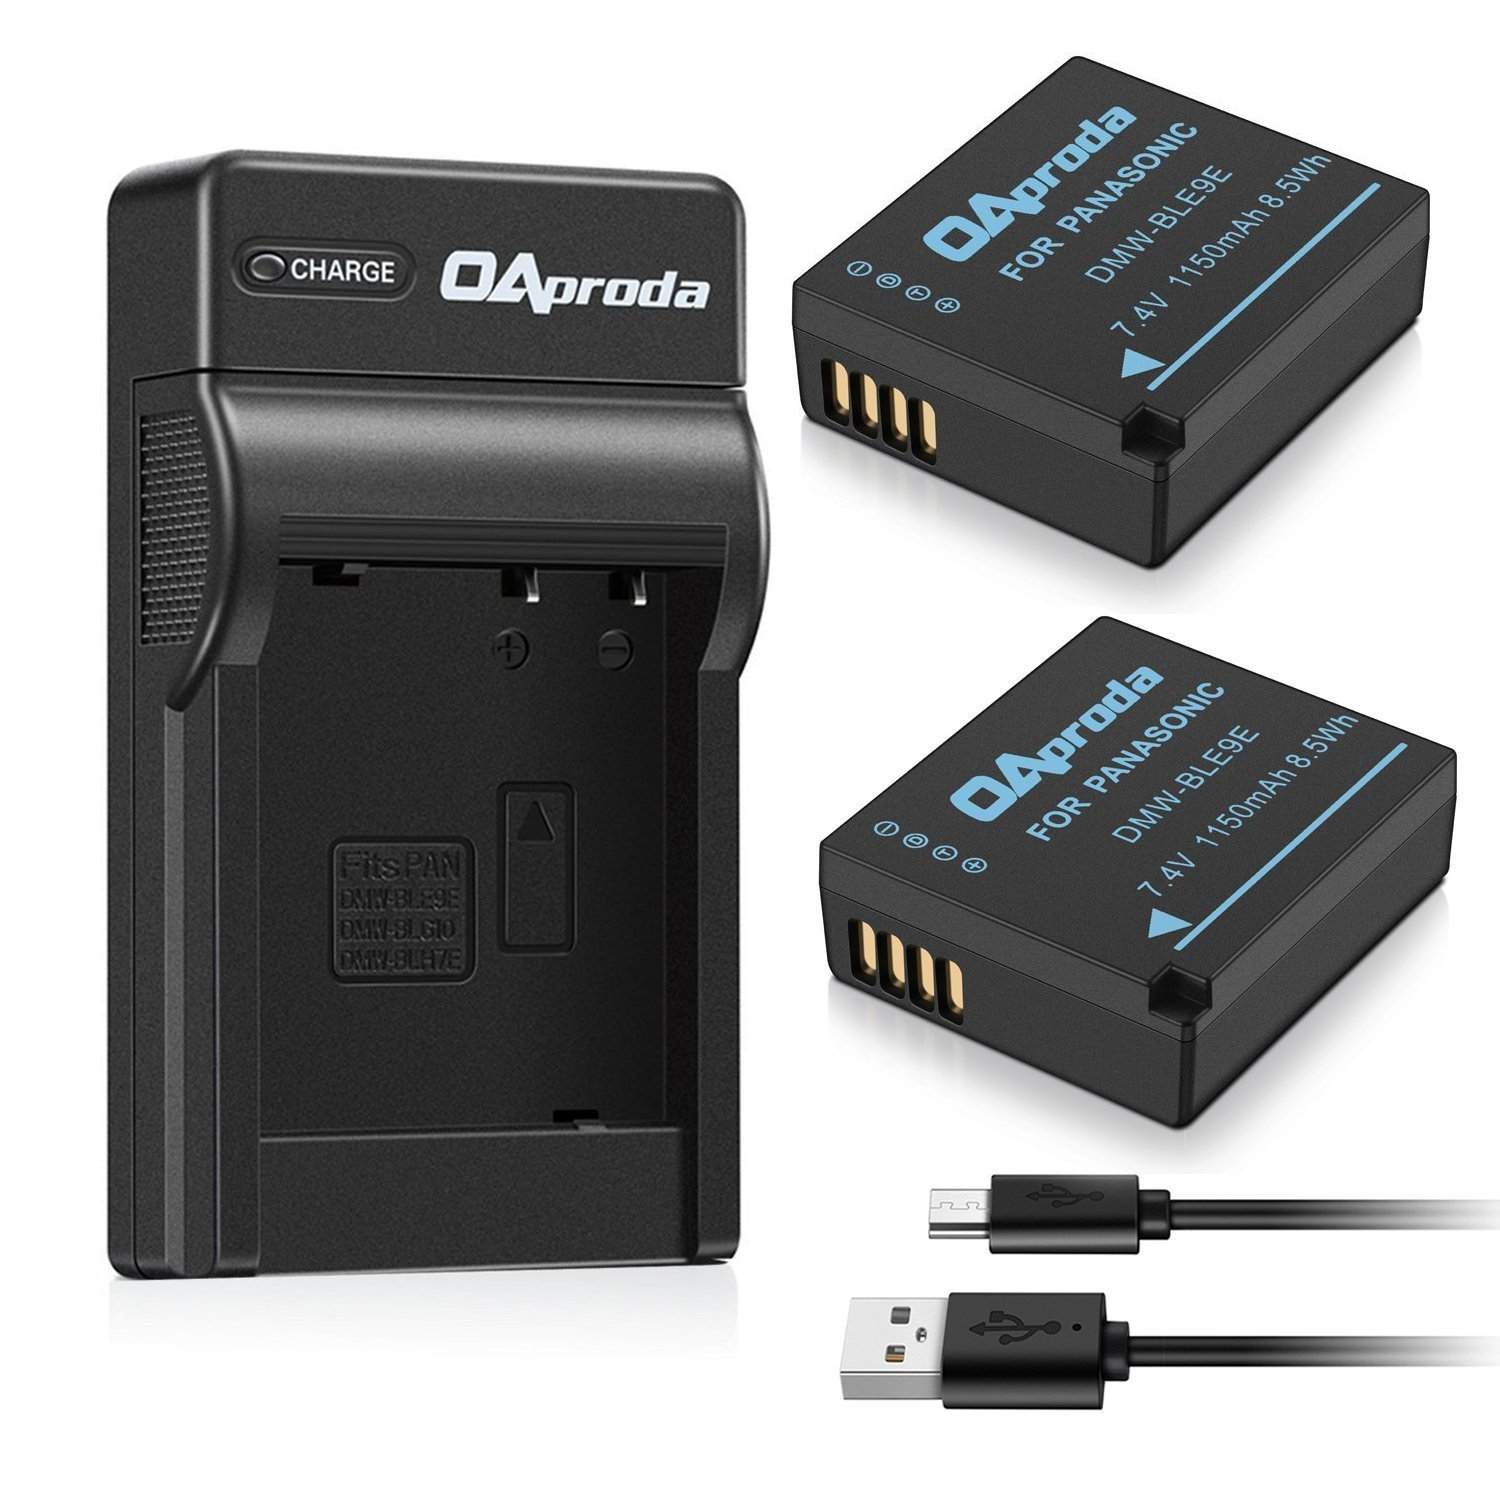 OAproda 2 Pack Battery and USB Charger for Panasonic DMW-BLE9, DMW-BLG10 and Lumix DMC-GF3, DMC-GF5, DMC-GF6, DMC-GX7, DMC-LX100, DMC-GX9, DMC-GX85, DMC-GX80, DMC-ZS200, DMC-ZS100, ZS70, ZS60